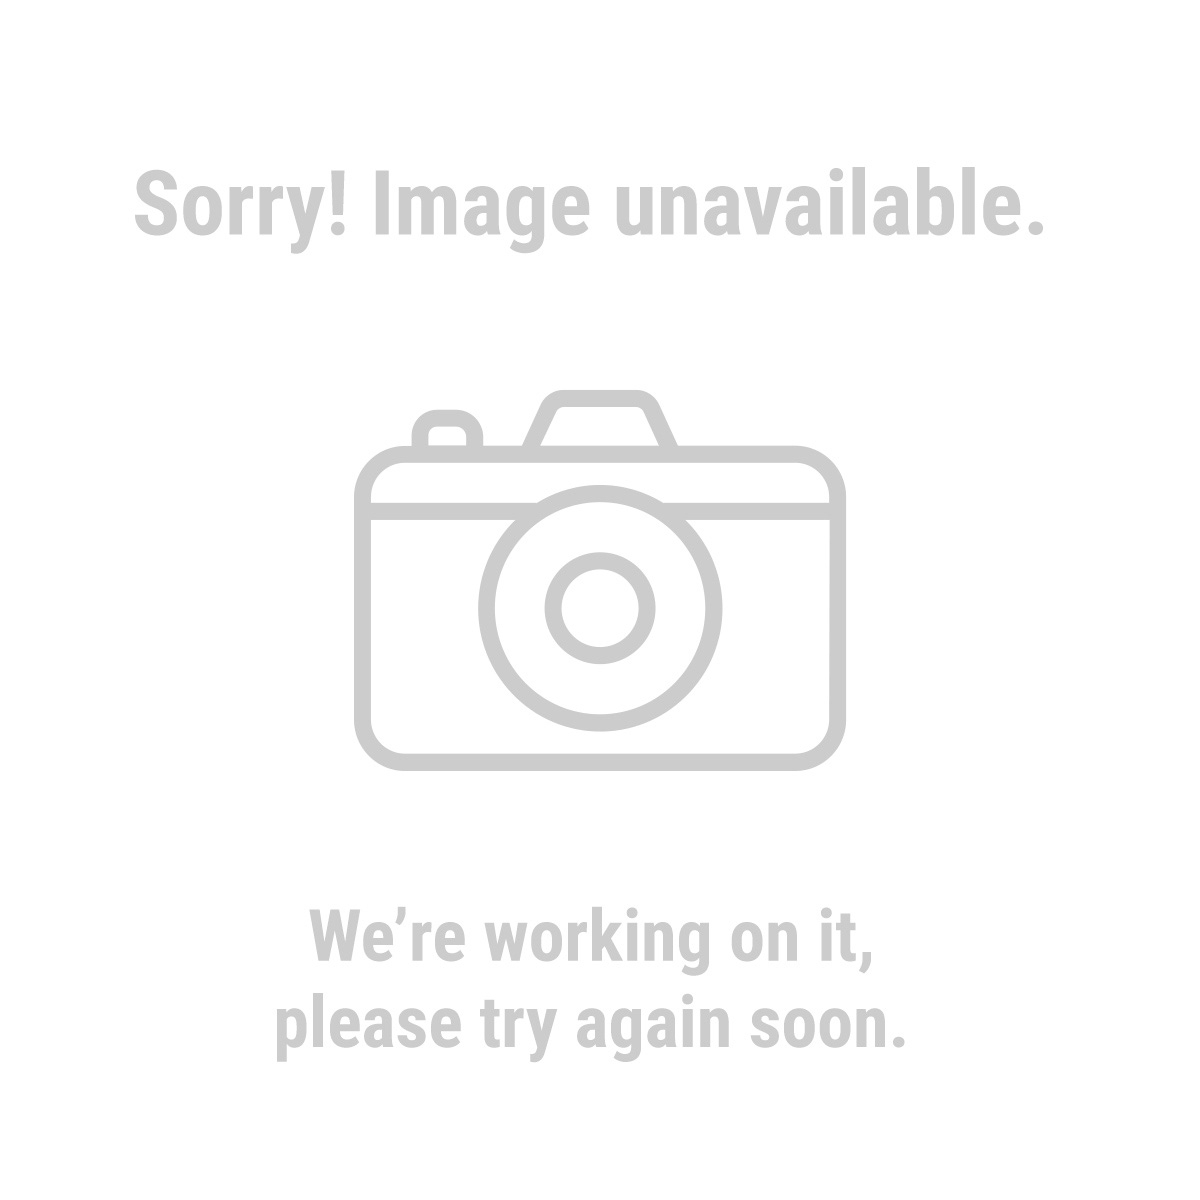 HARDY 95537 Leather Mechanic's Gloves, Large